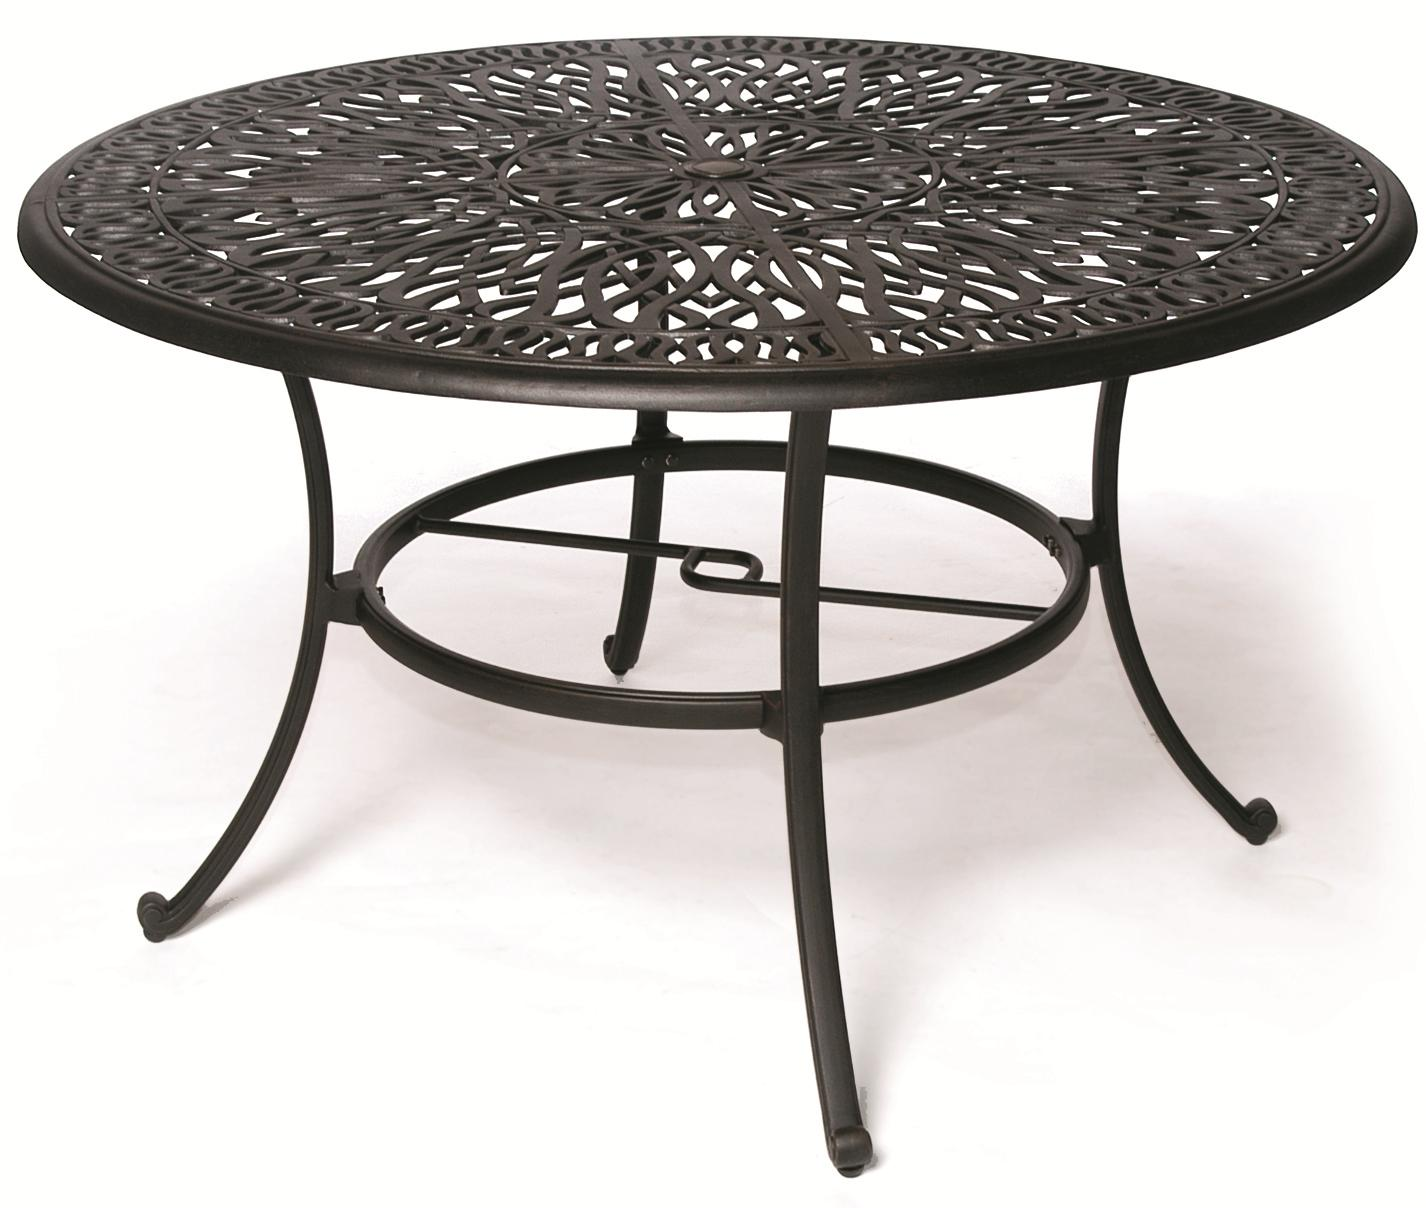 Biscayne Aluminum Round Dining Table With Scroll Legs By Hanamint